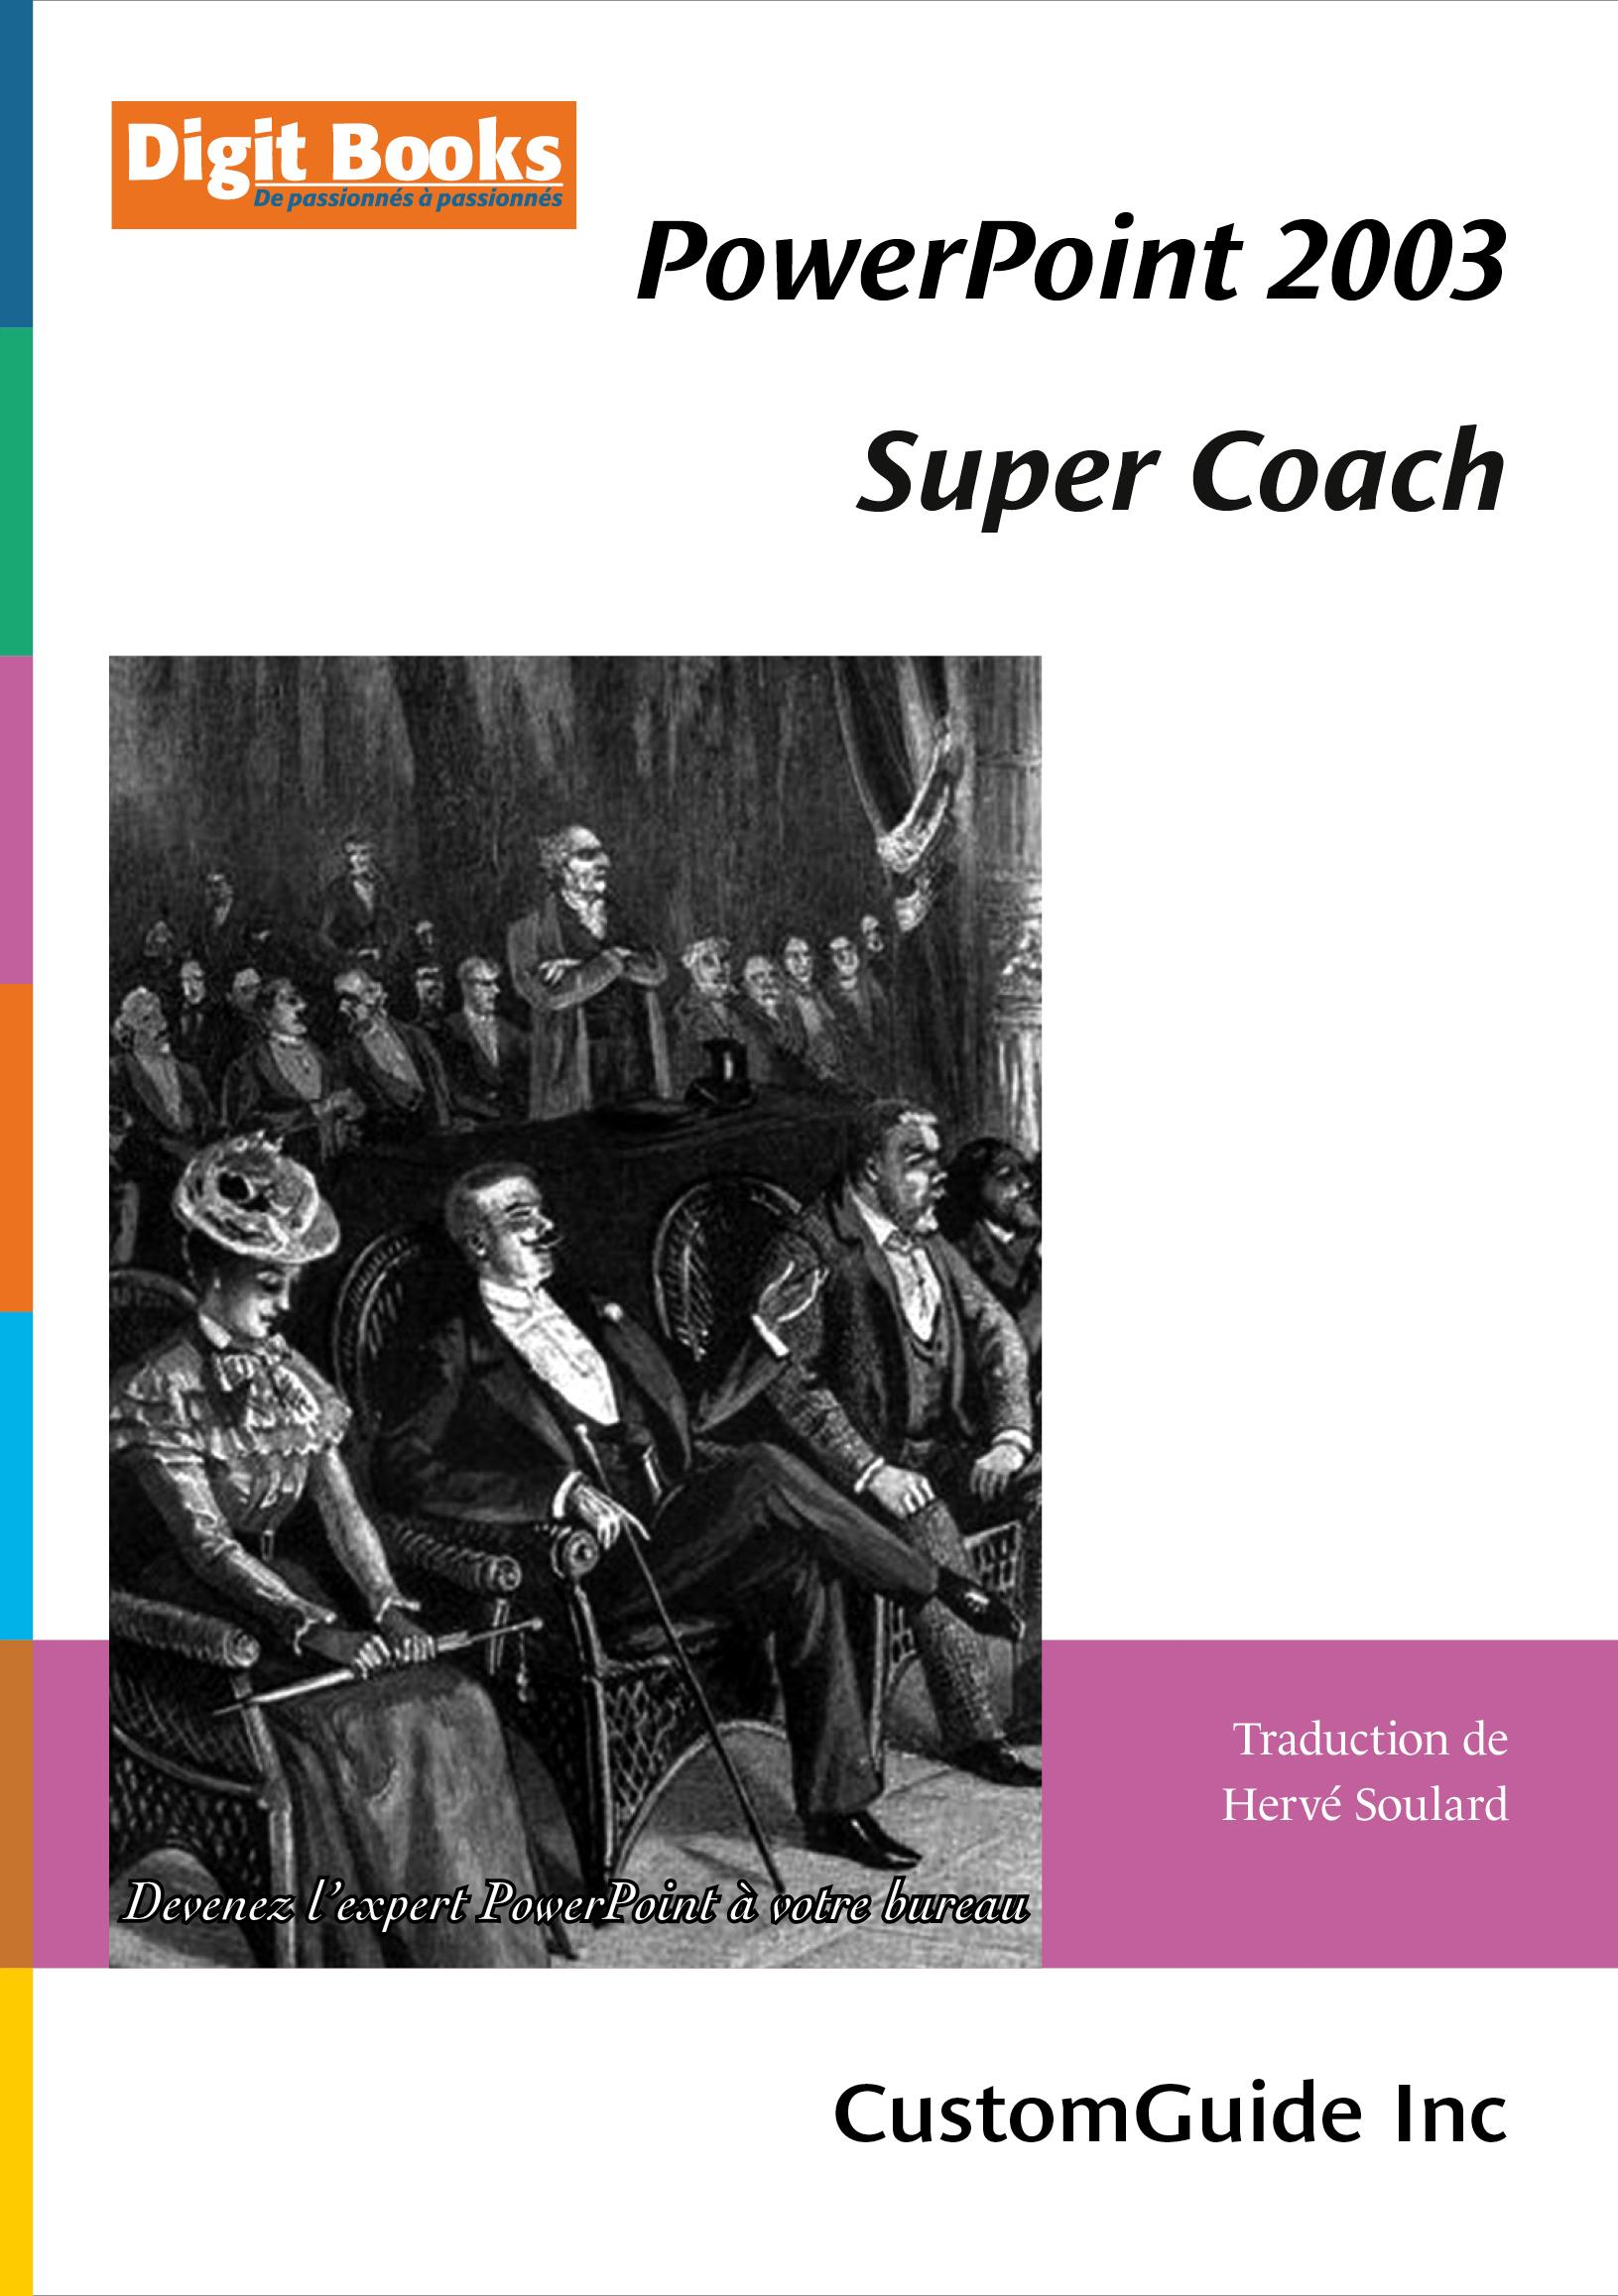 PowerPoint 2003 Super Coach